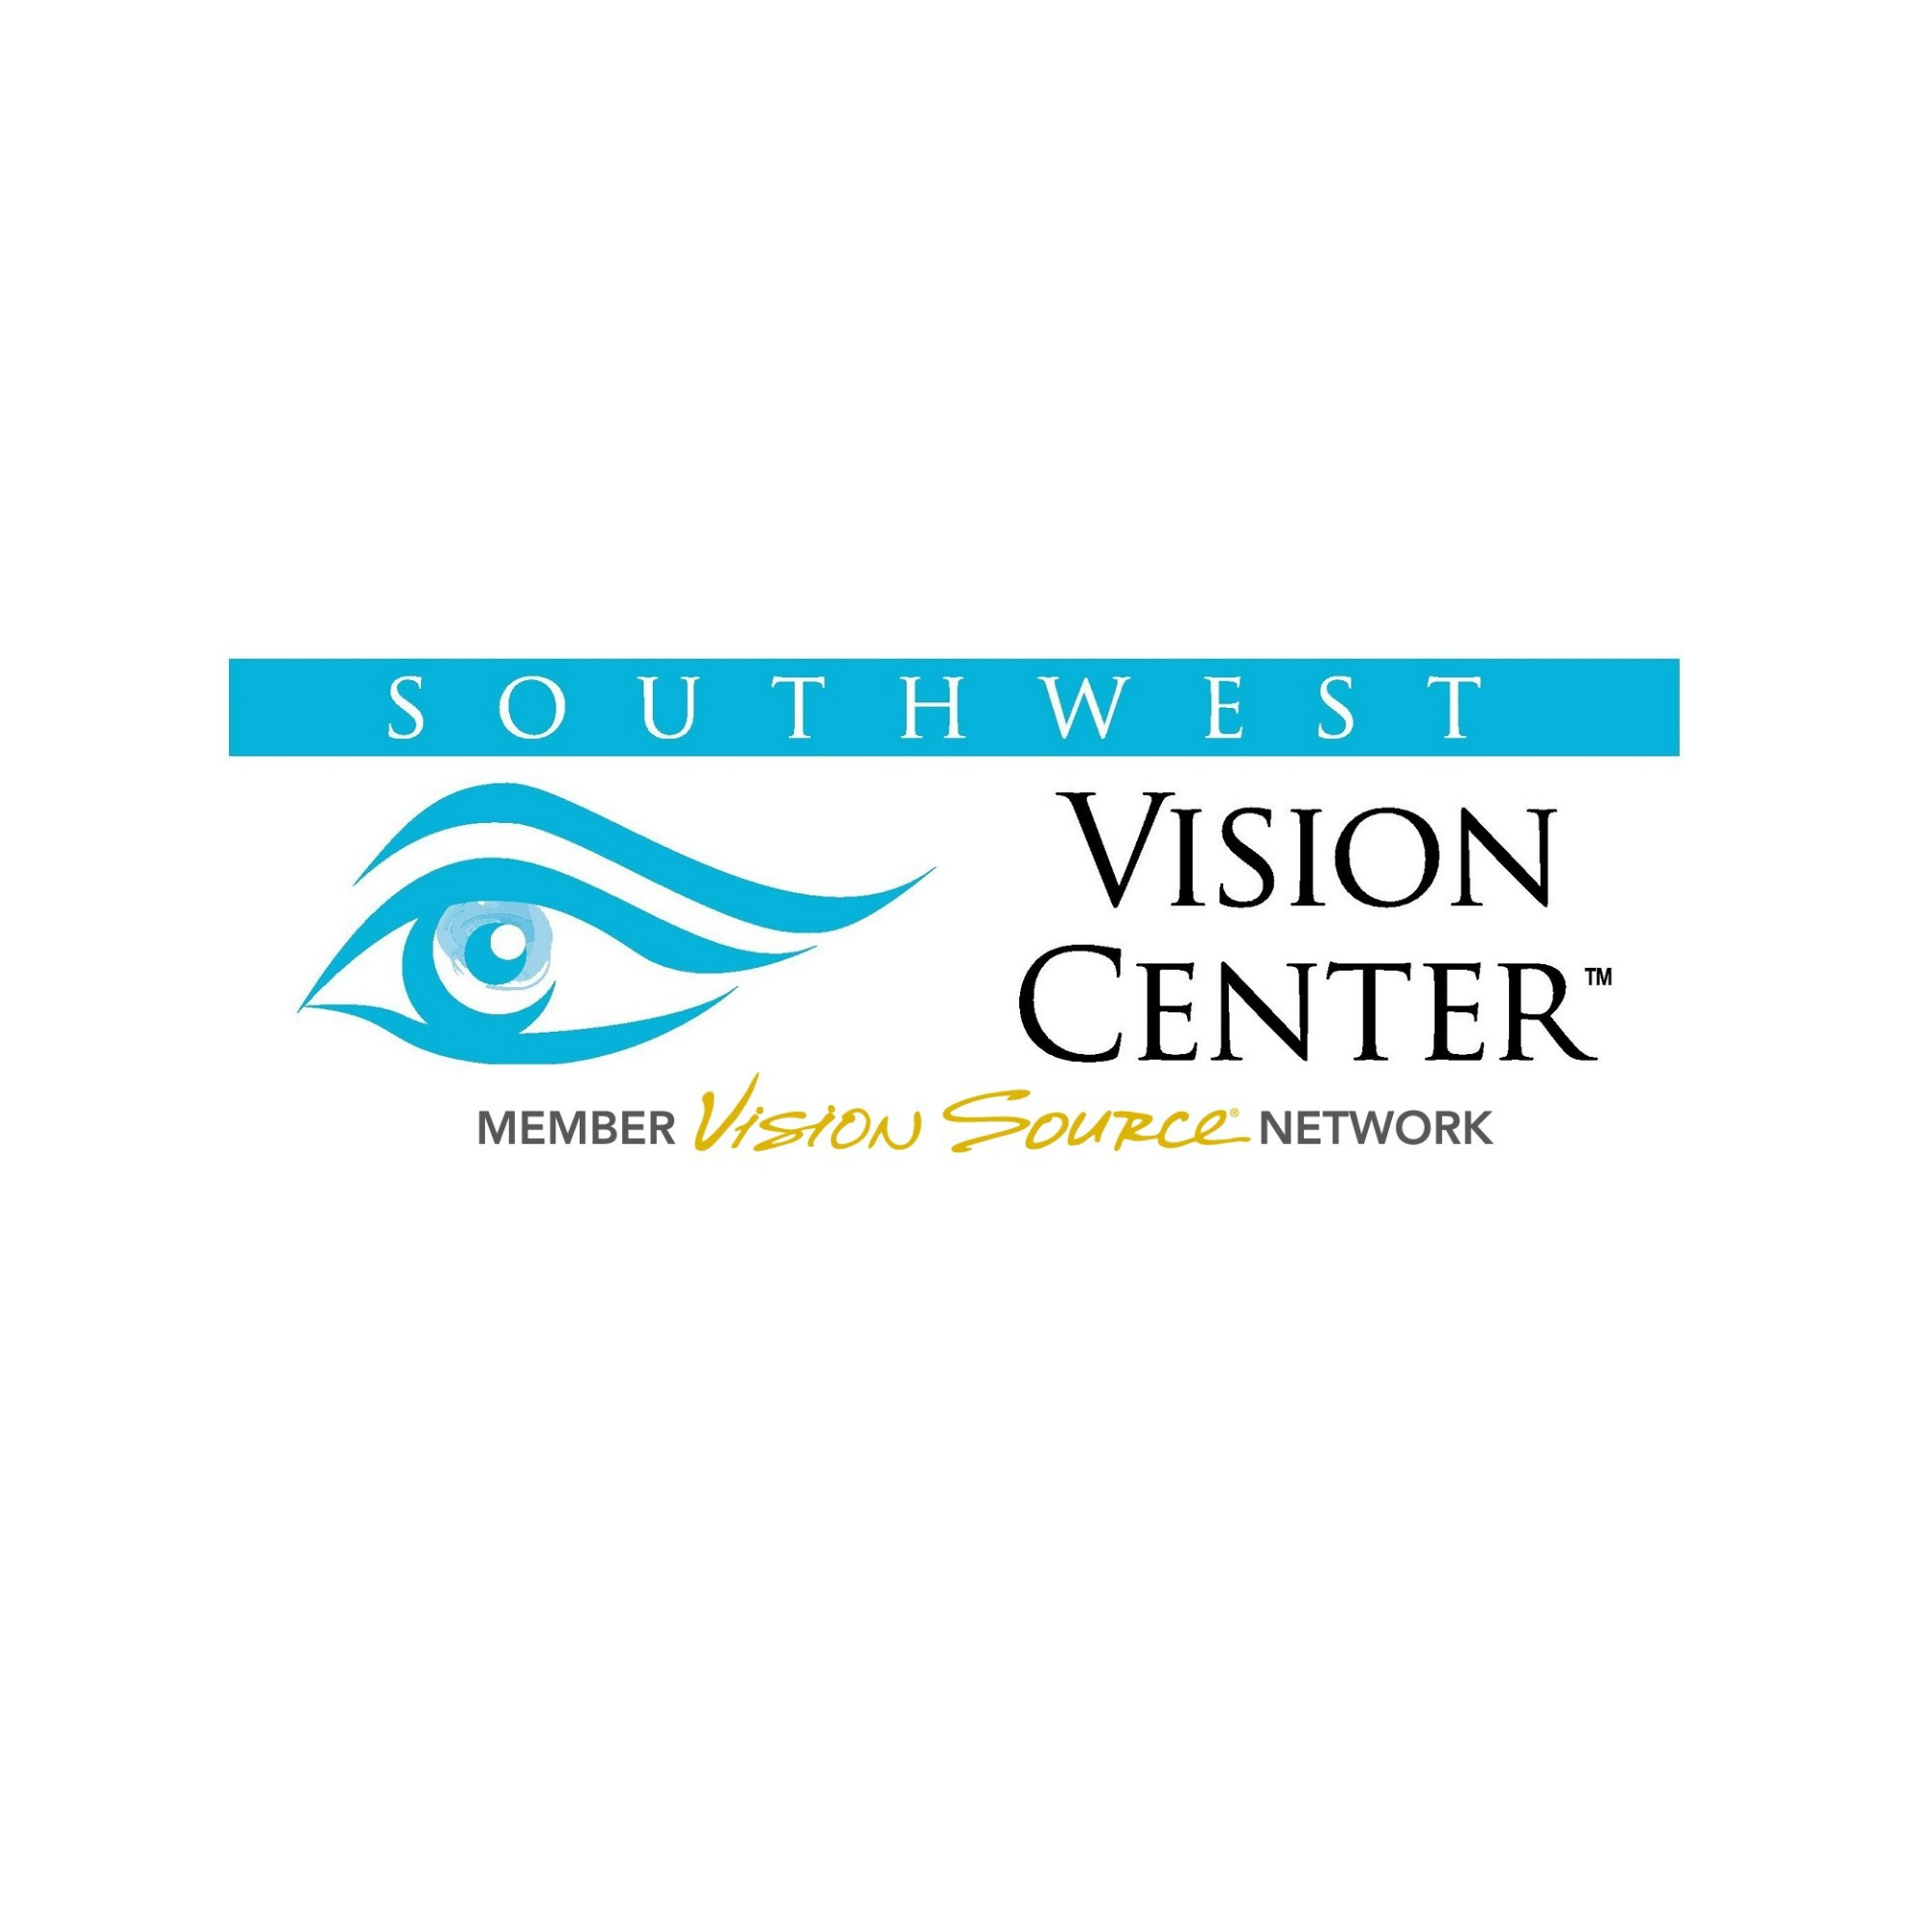 Southwest Vision Center Coupons Near Me In New York 8coupons